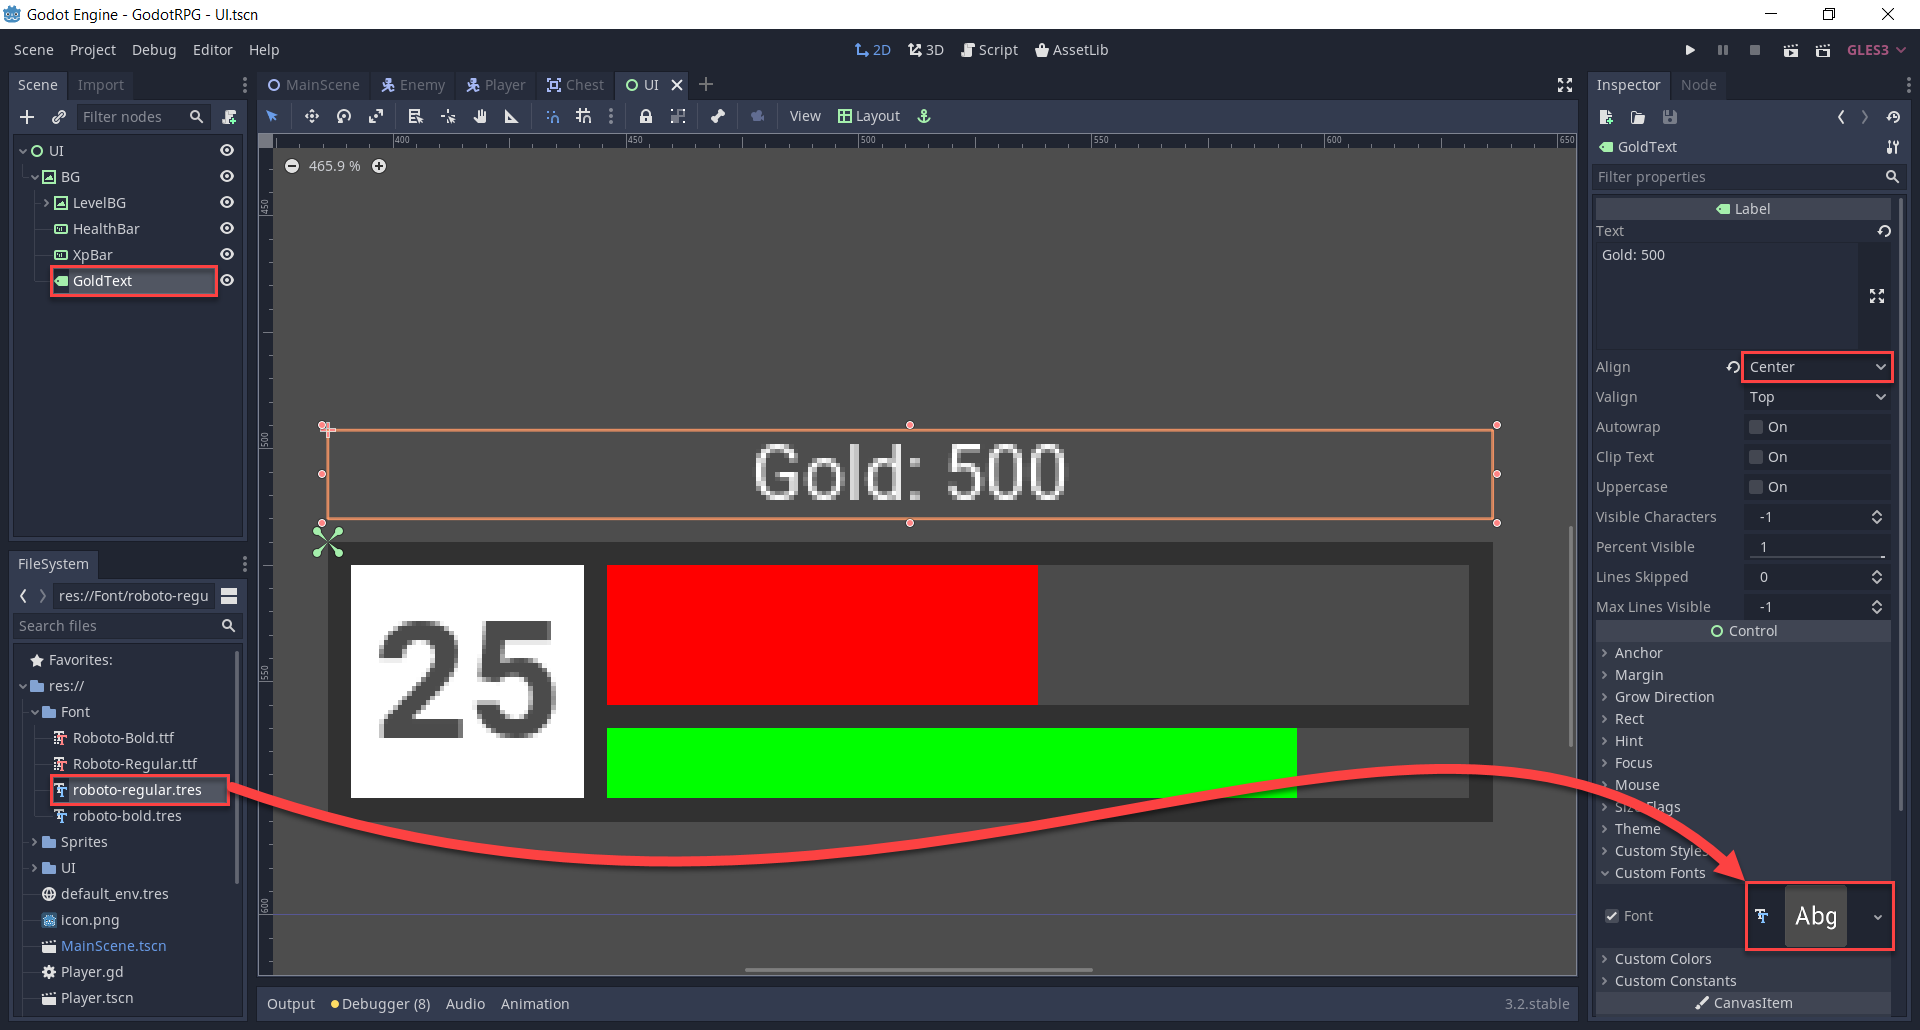 Godot UI with Text for gold amount added